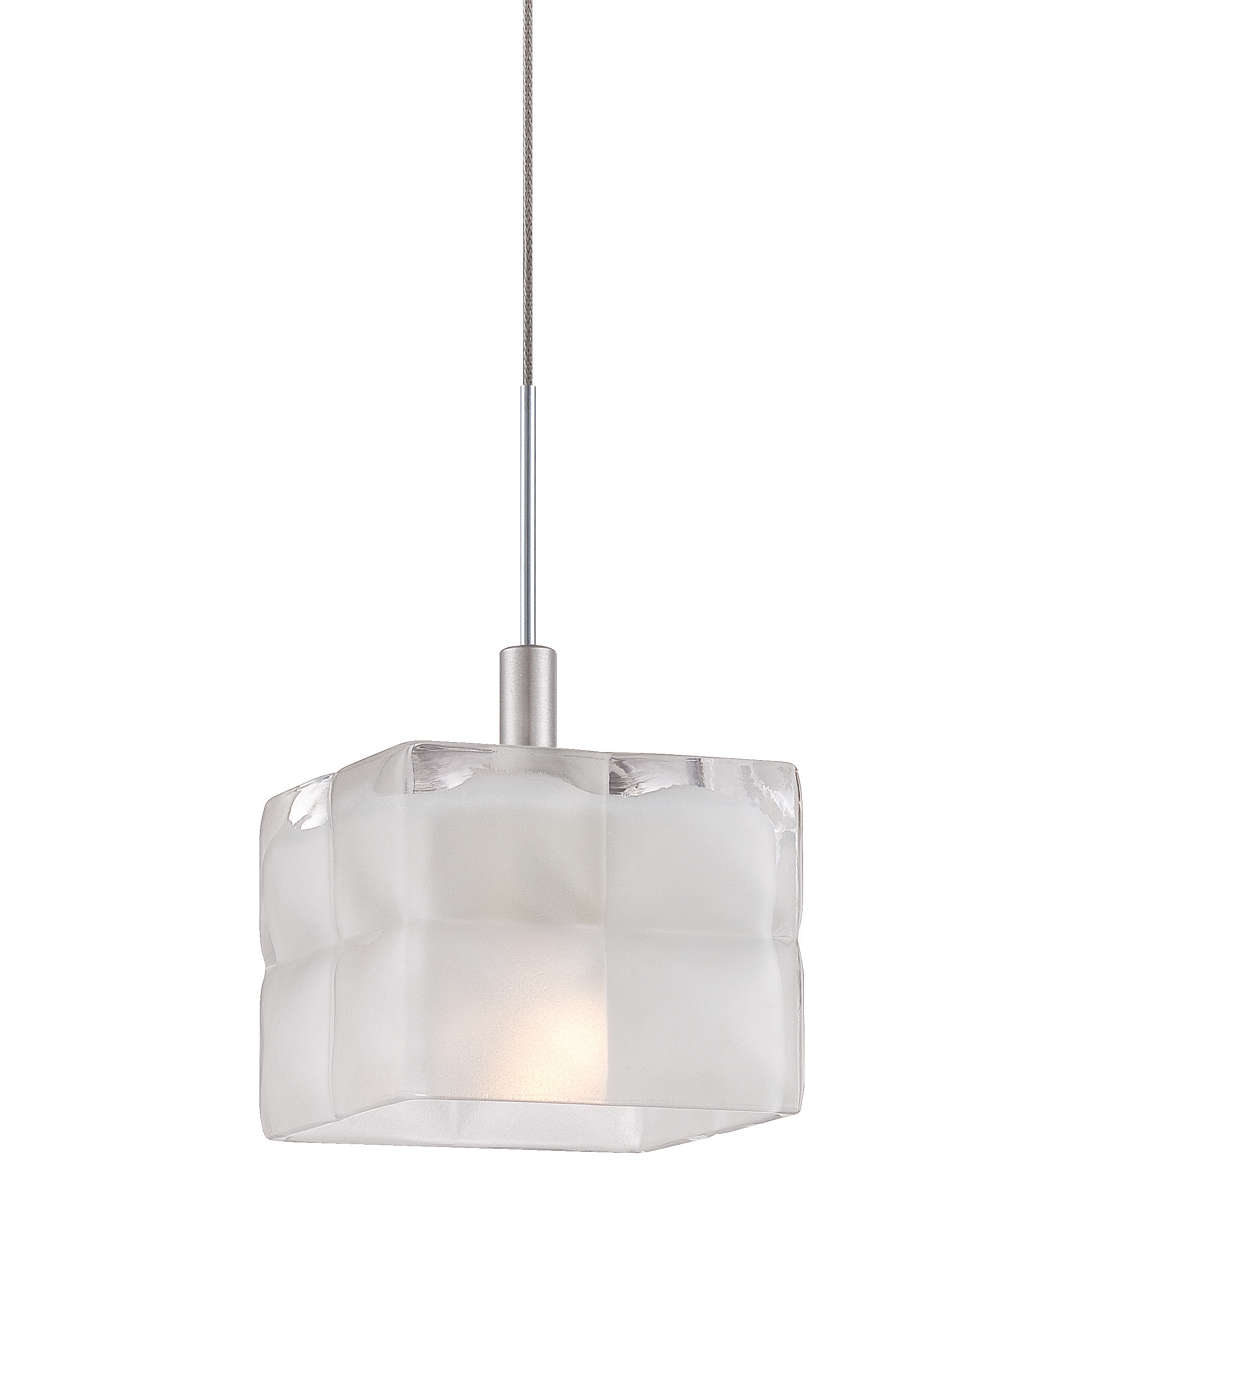 Cushion clear glass shade